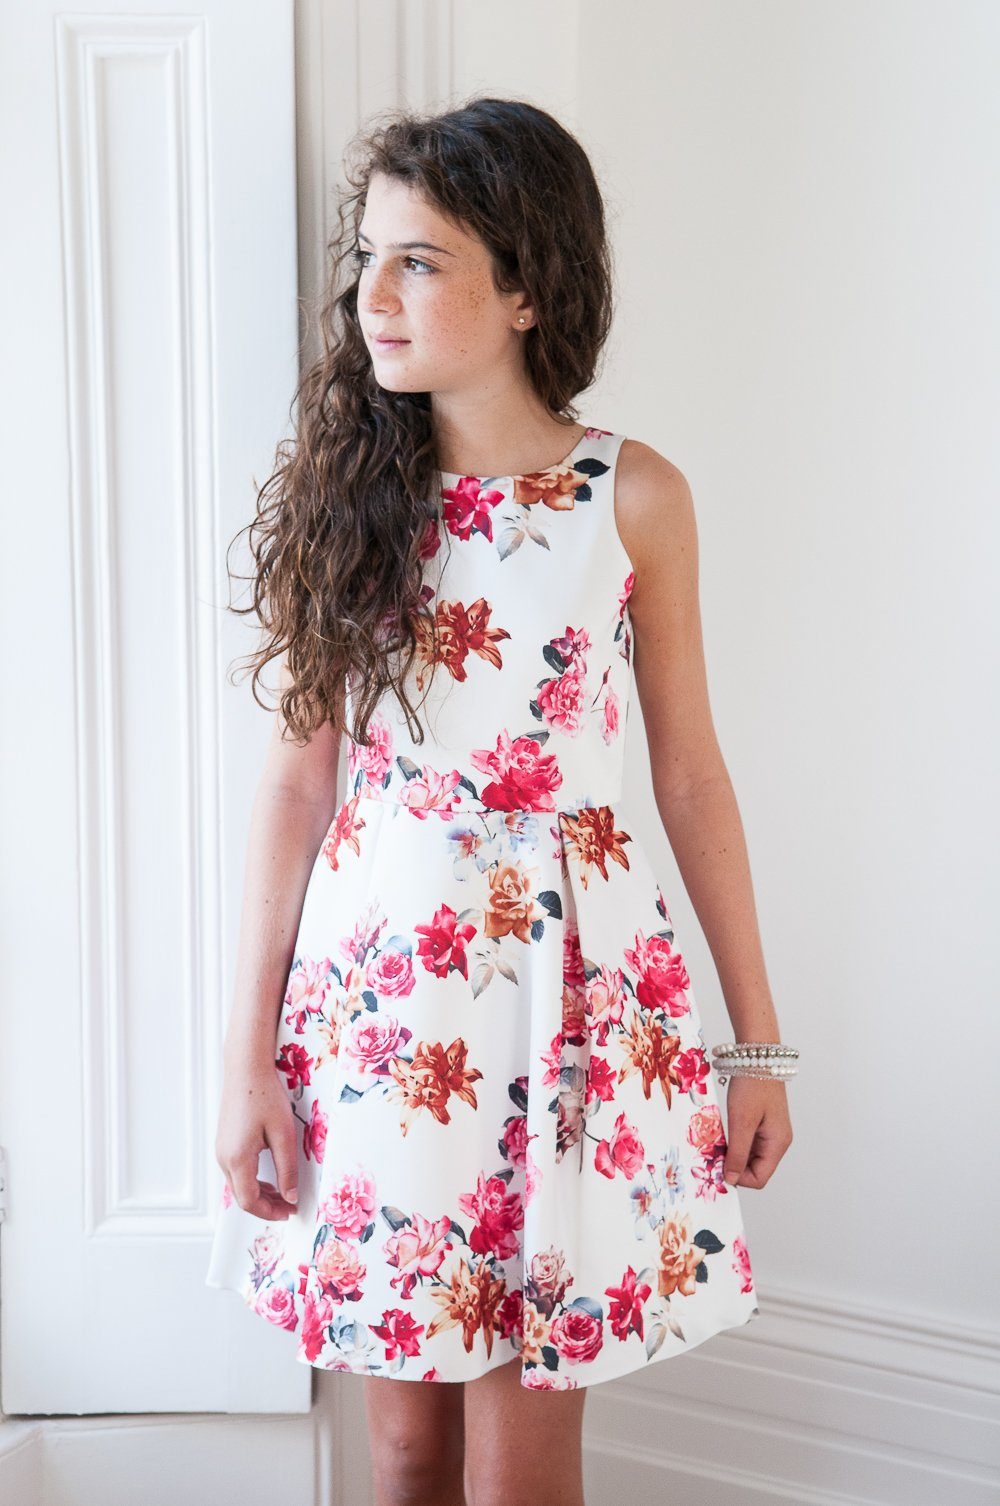 Floral Summer Dress - David Charles Childrens Wear